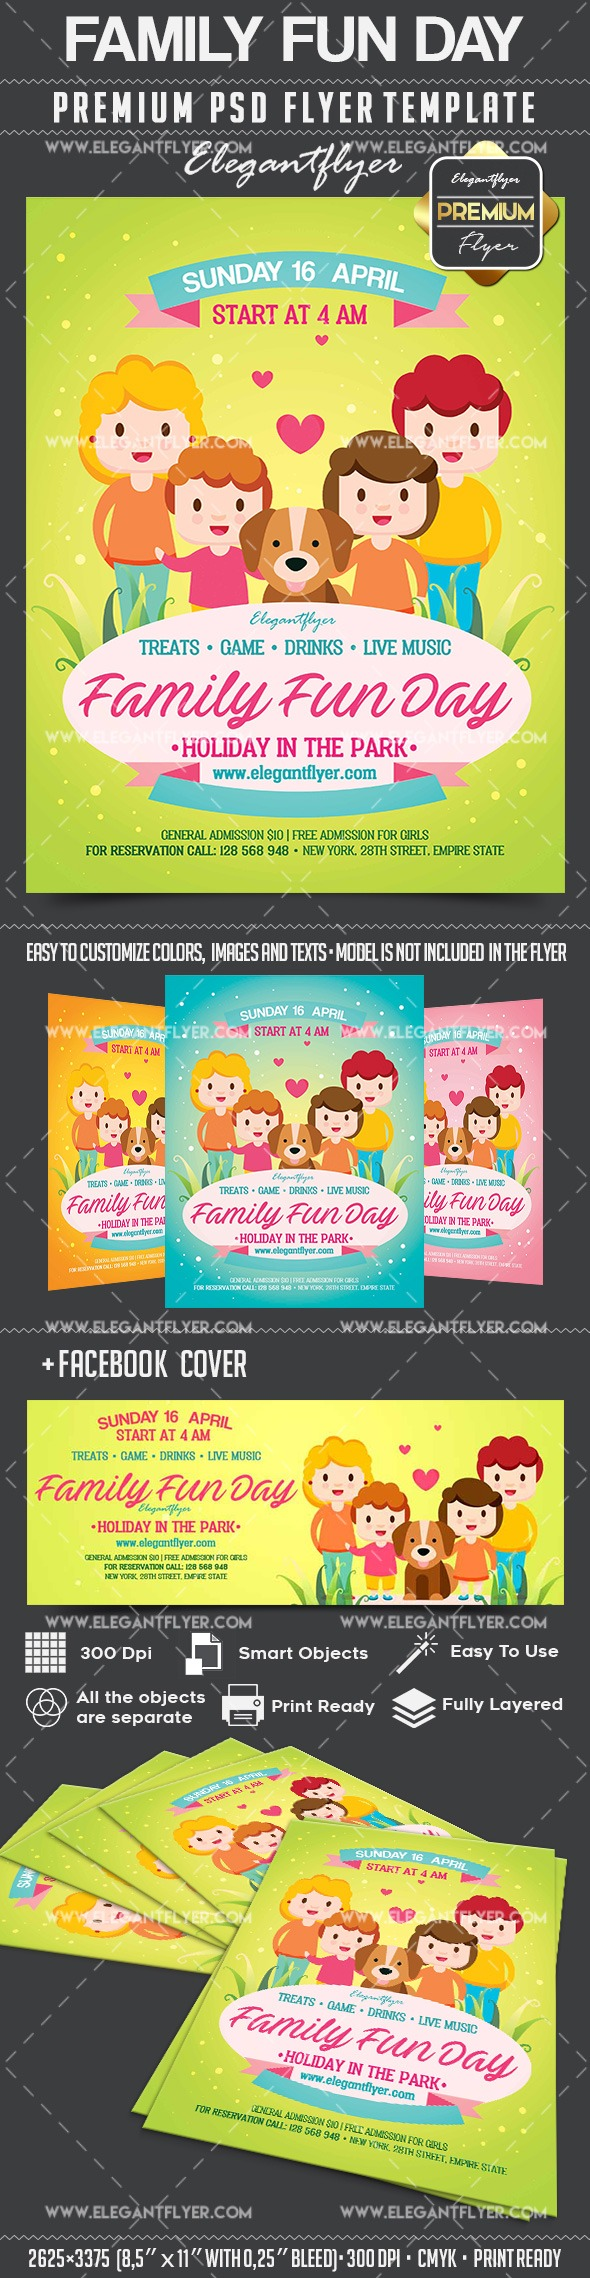 family fun day flyer psd template by elegantflyer. Black Bedroom Furniture Sets. Home Design Ideas